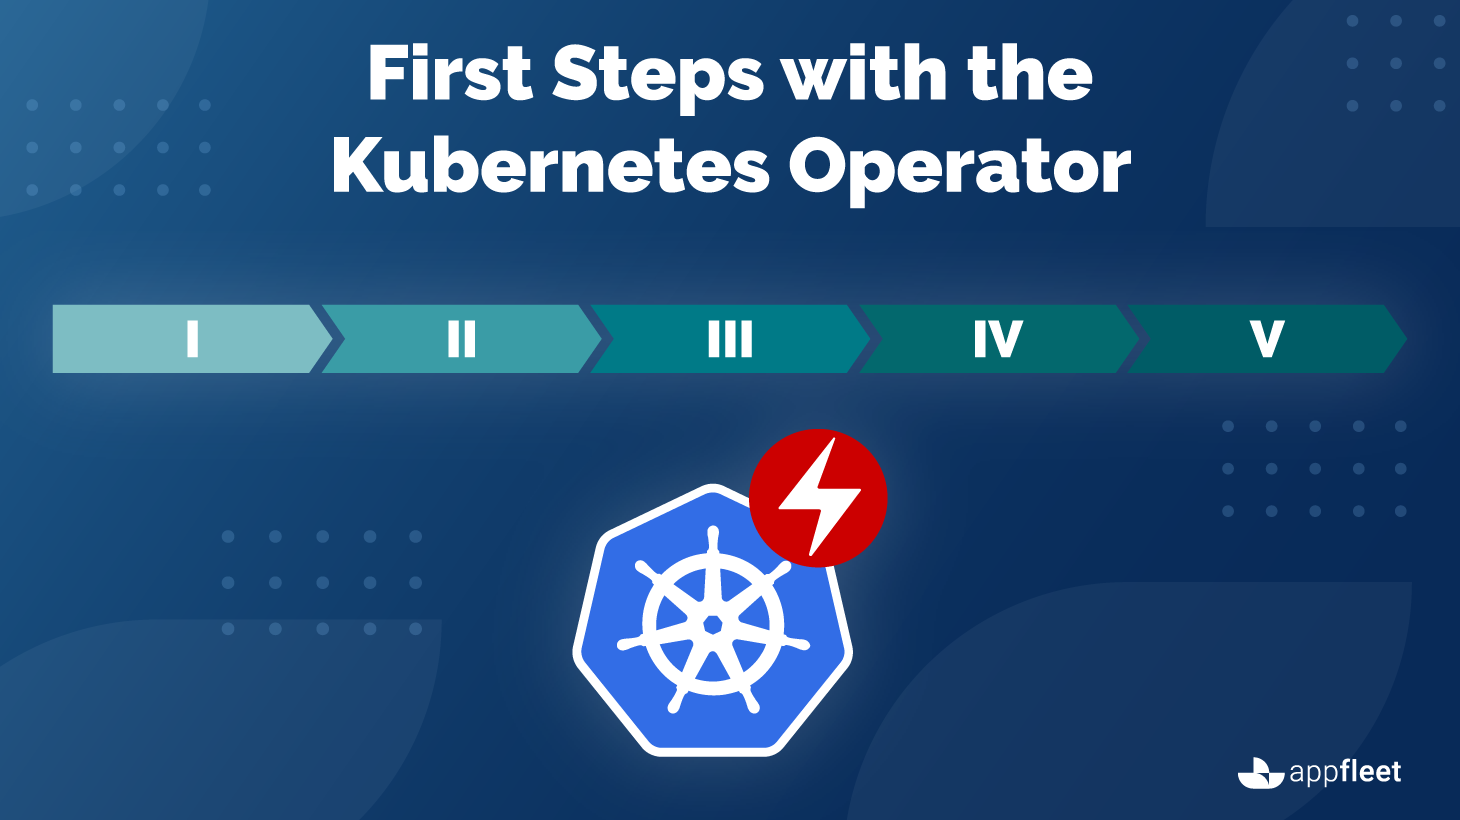 First Steps with the Kubernetes Operator - Basic Principles